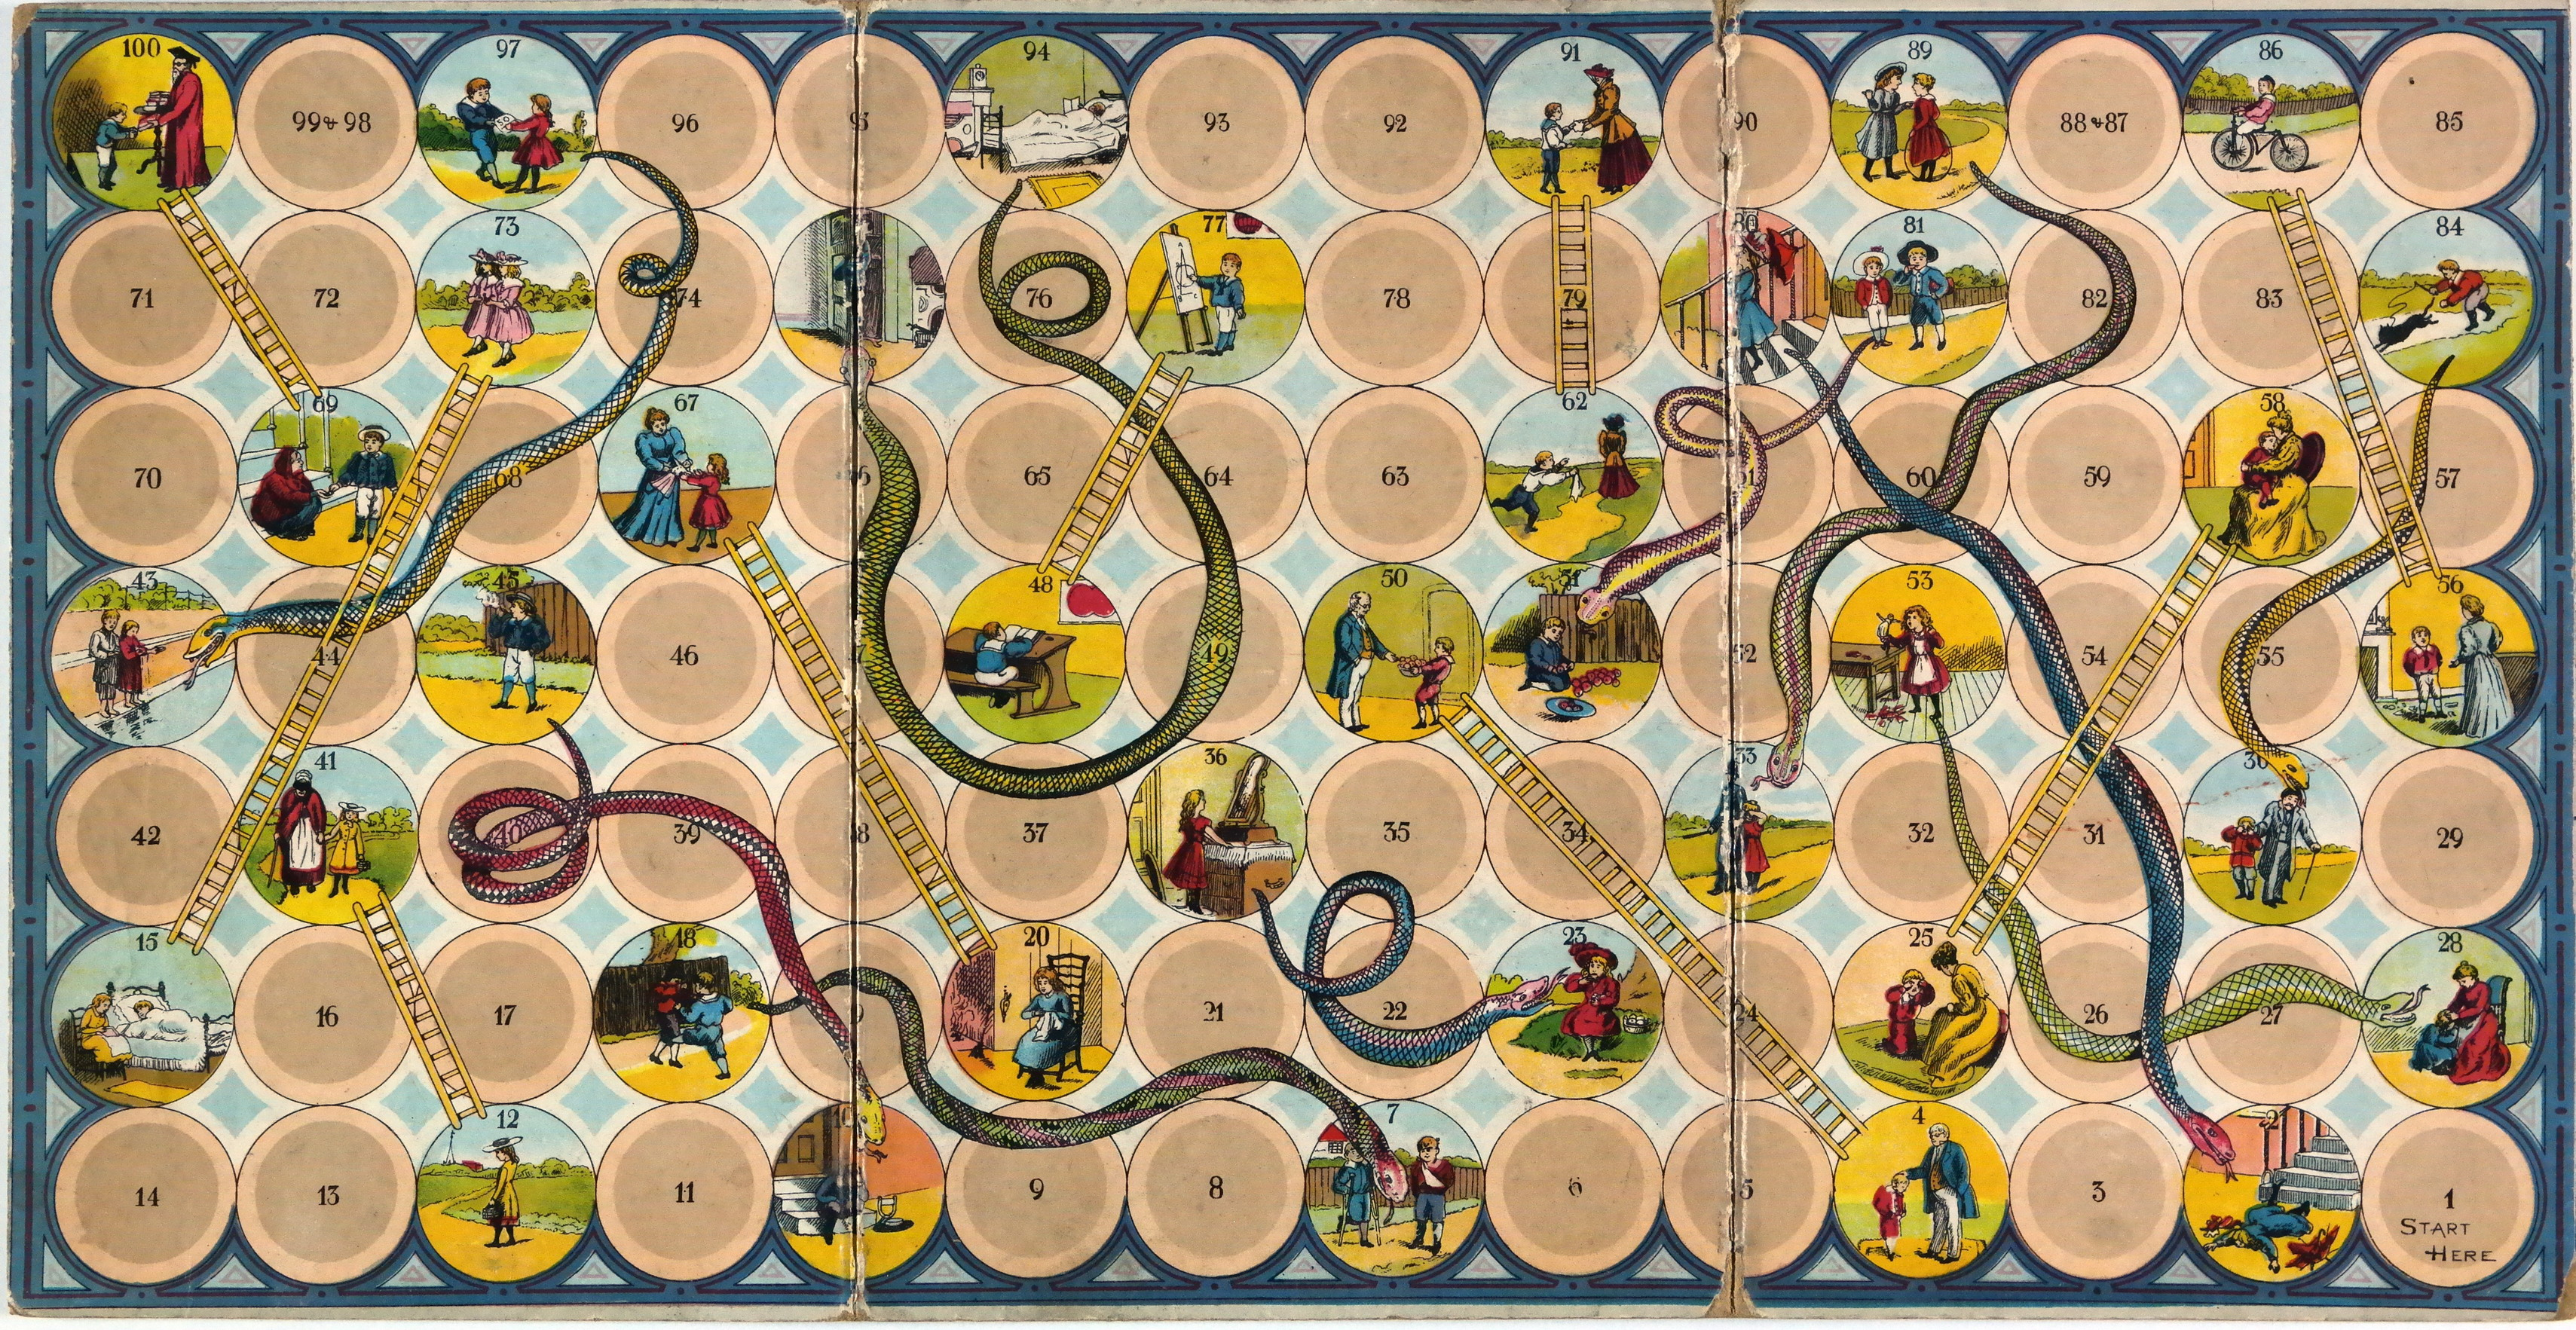 Zen Guide to Snakes and Ladders